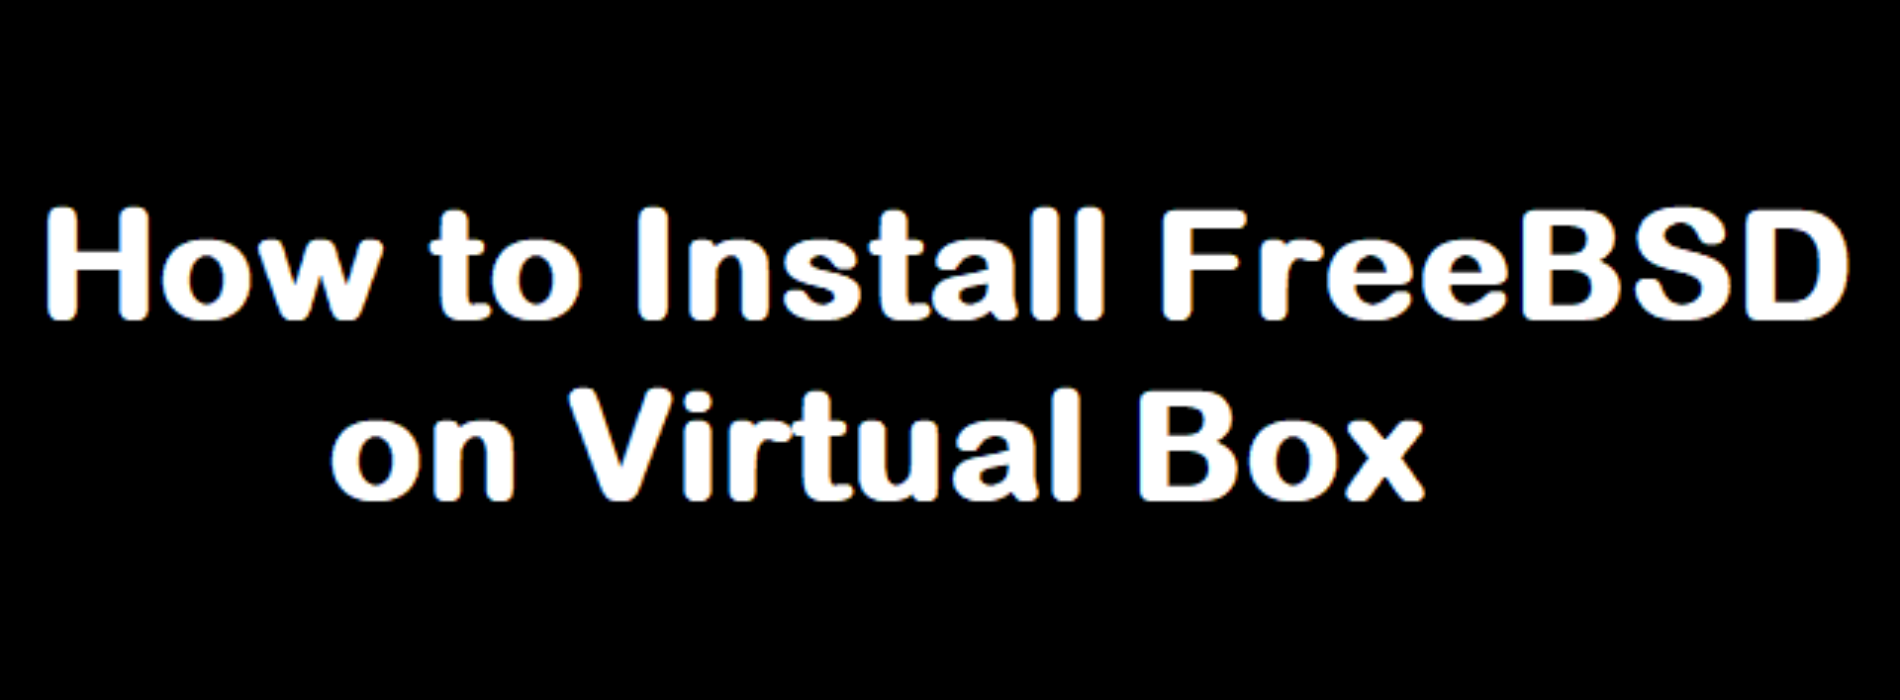 [FreeBSD] How to Install FreeBSD OS, Step by step guide using a virtual machine